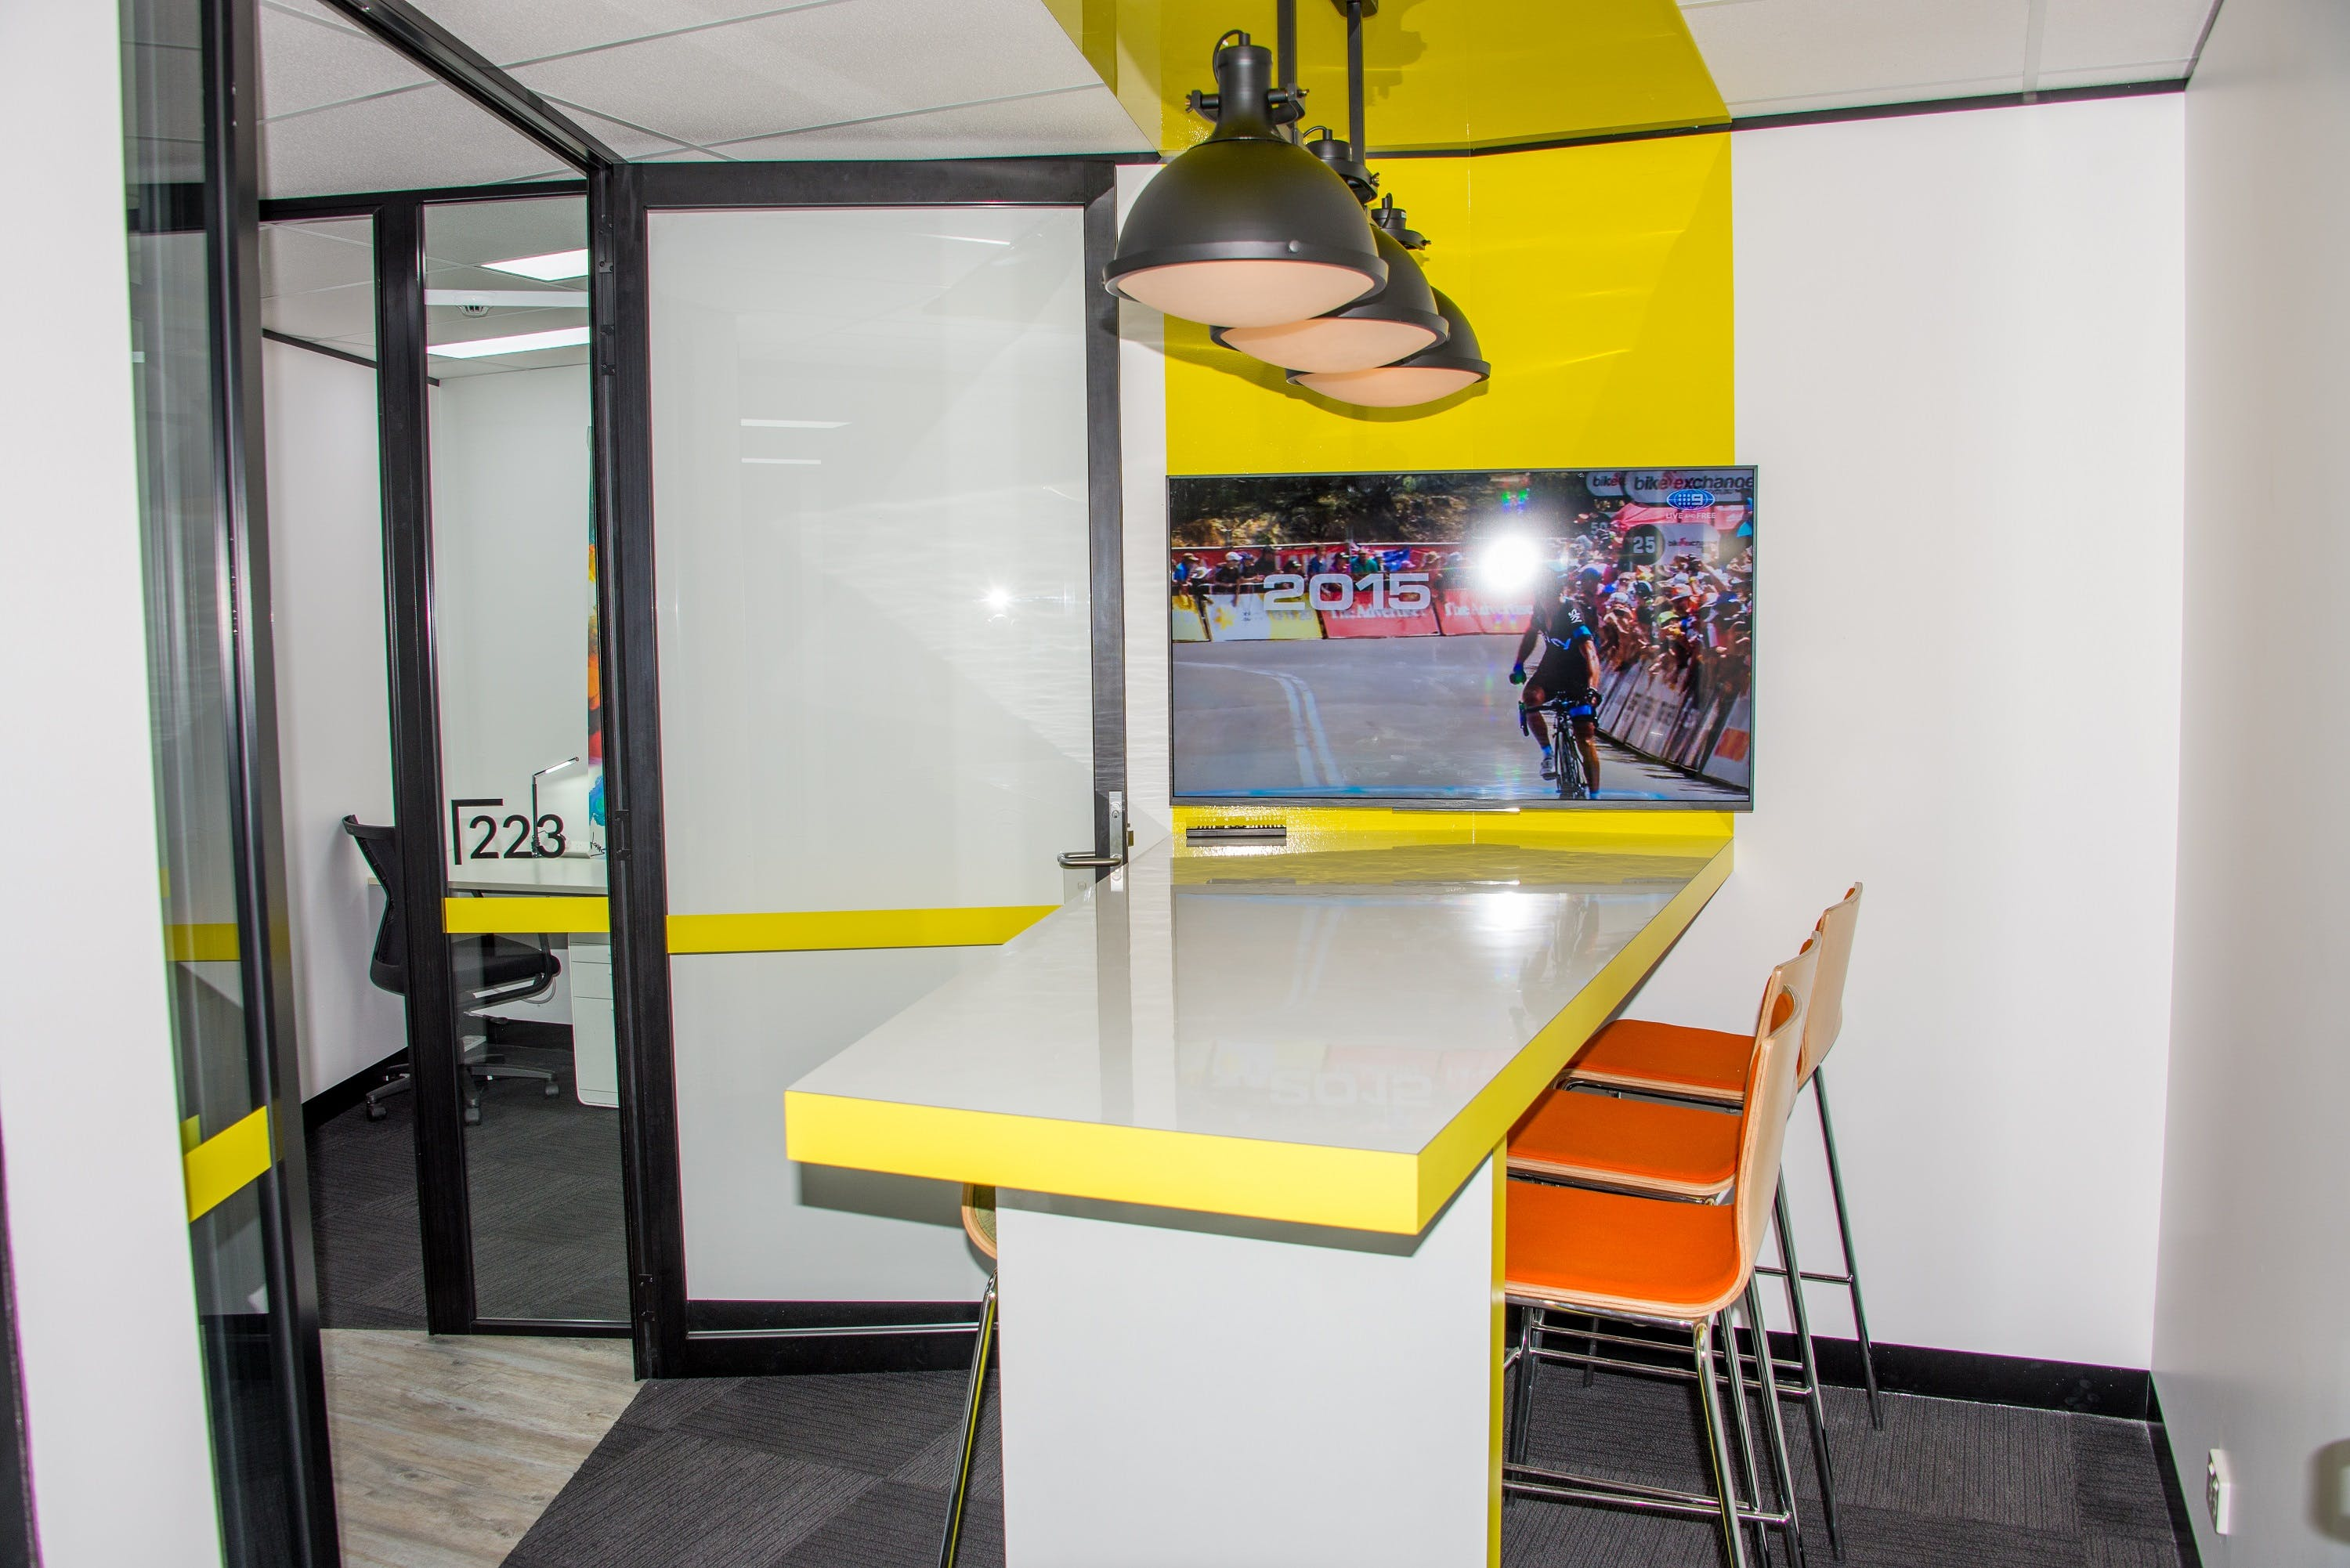 Meeting Room, meeting room at Anytime Offices, image 2